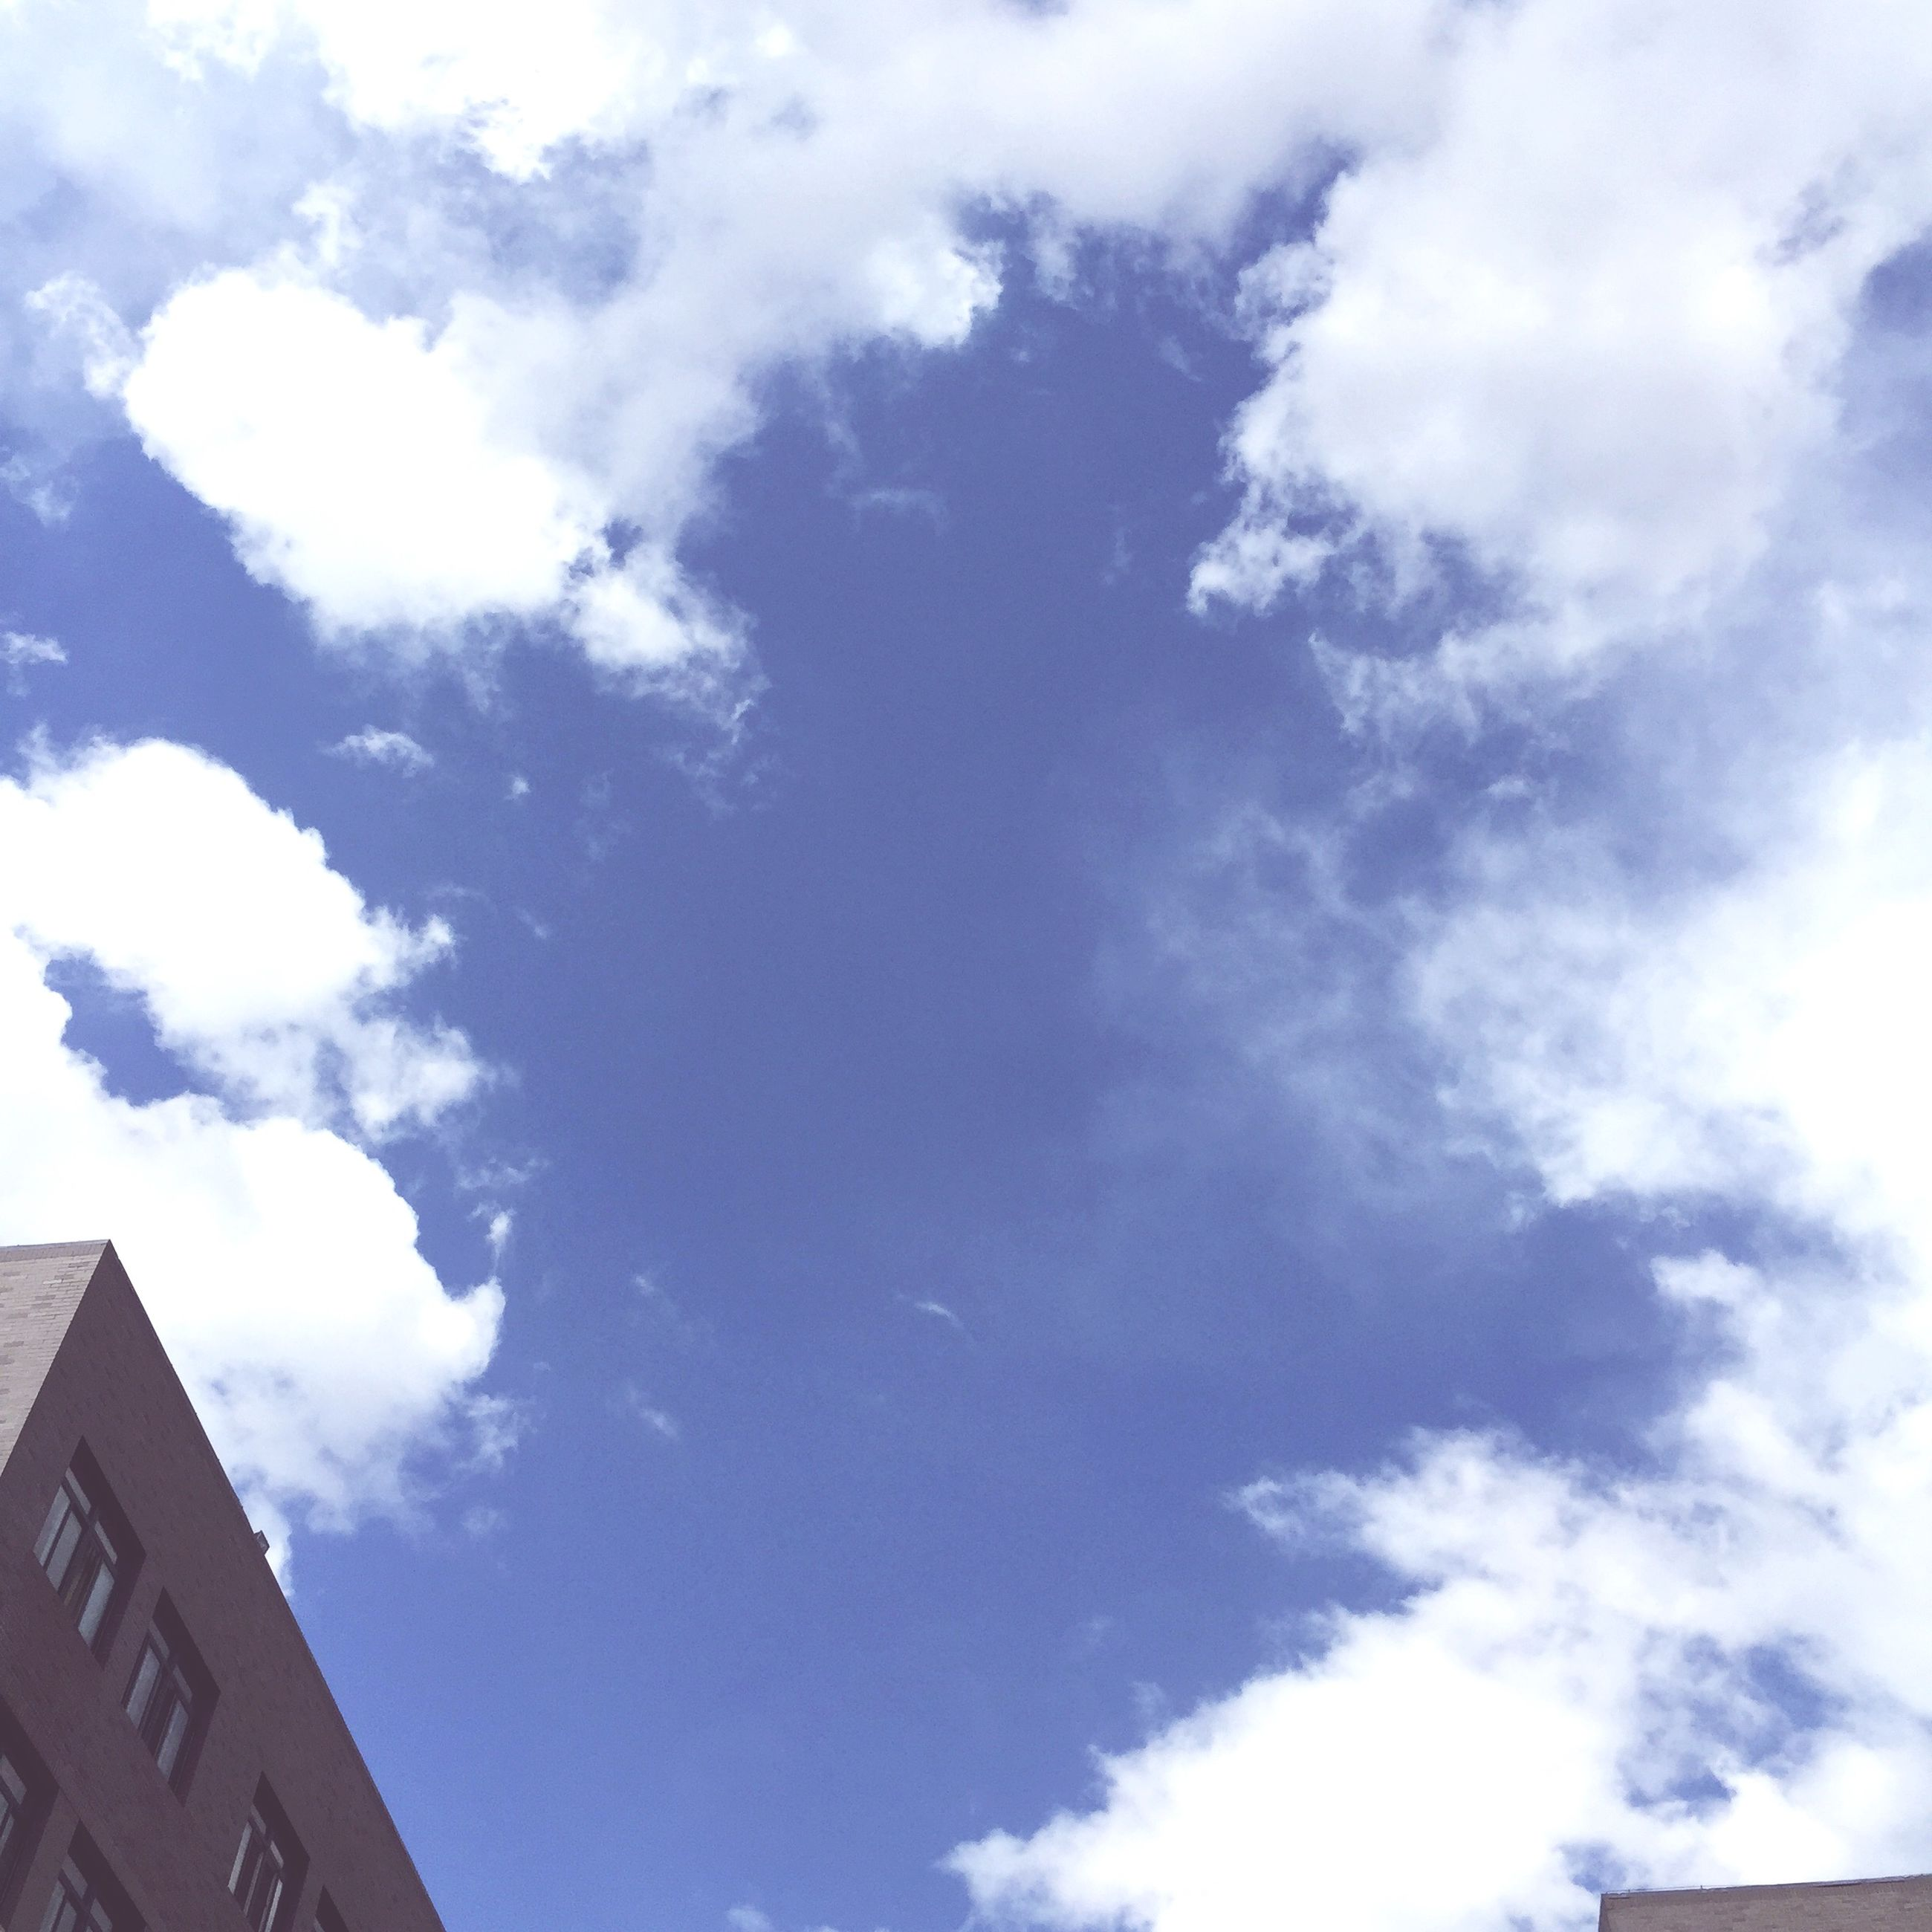 low angle view, sky, building exterior, architecture, built structure, cloud - sky, cloud, cloudy, high section, blue, building, city, outdoors, day, no people, nature, residential building, sunlight, residential structure, tall - high